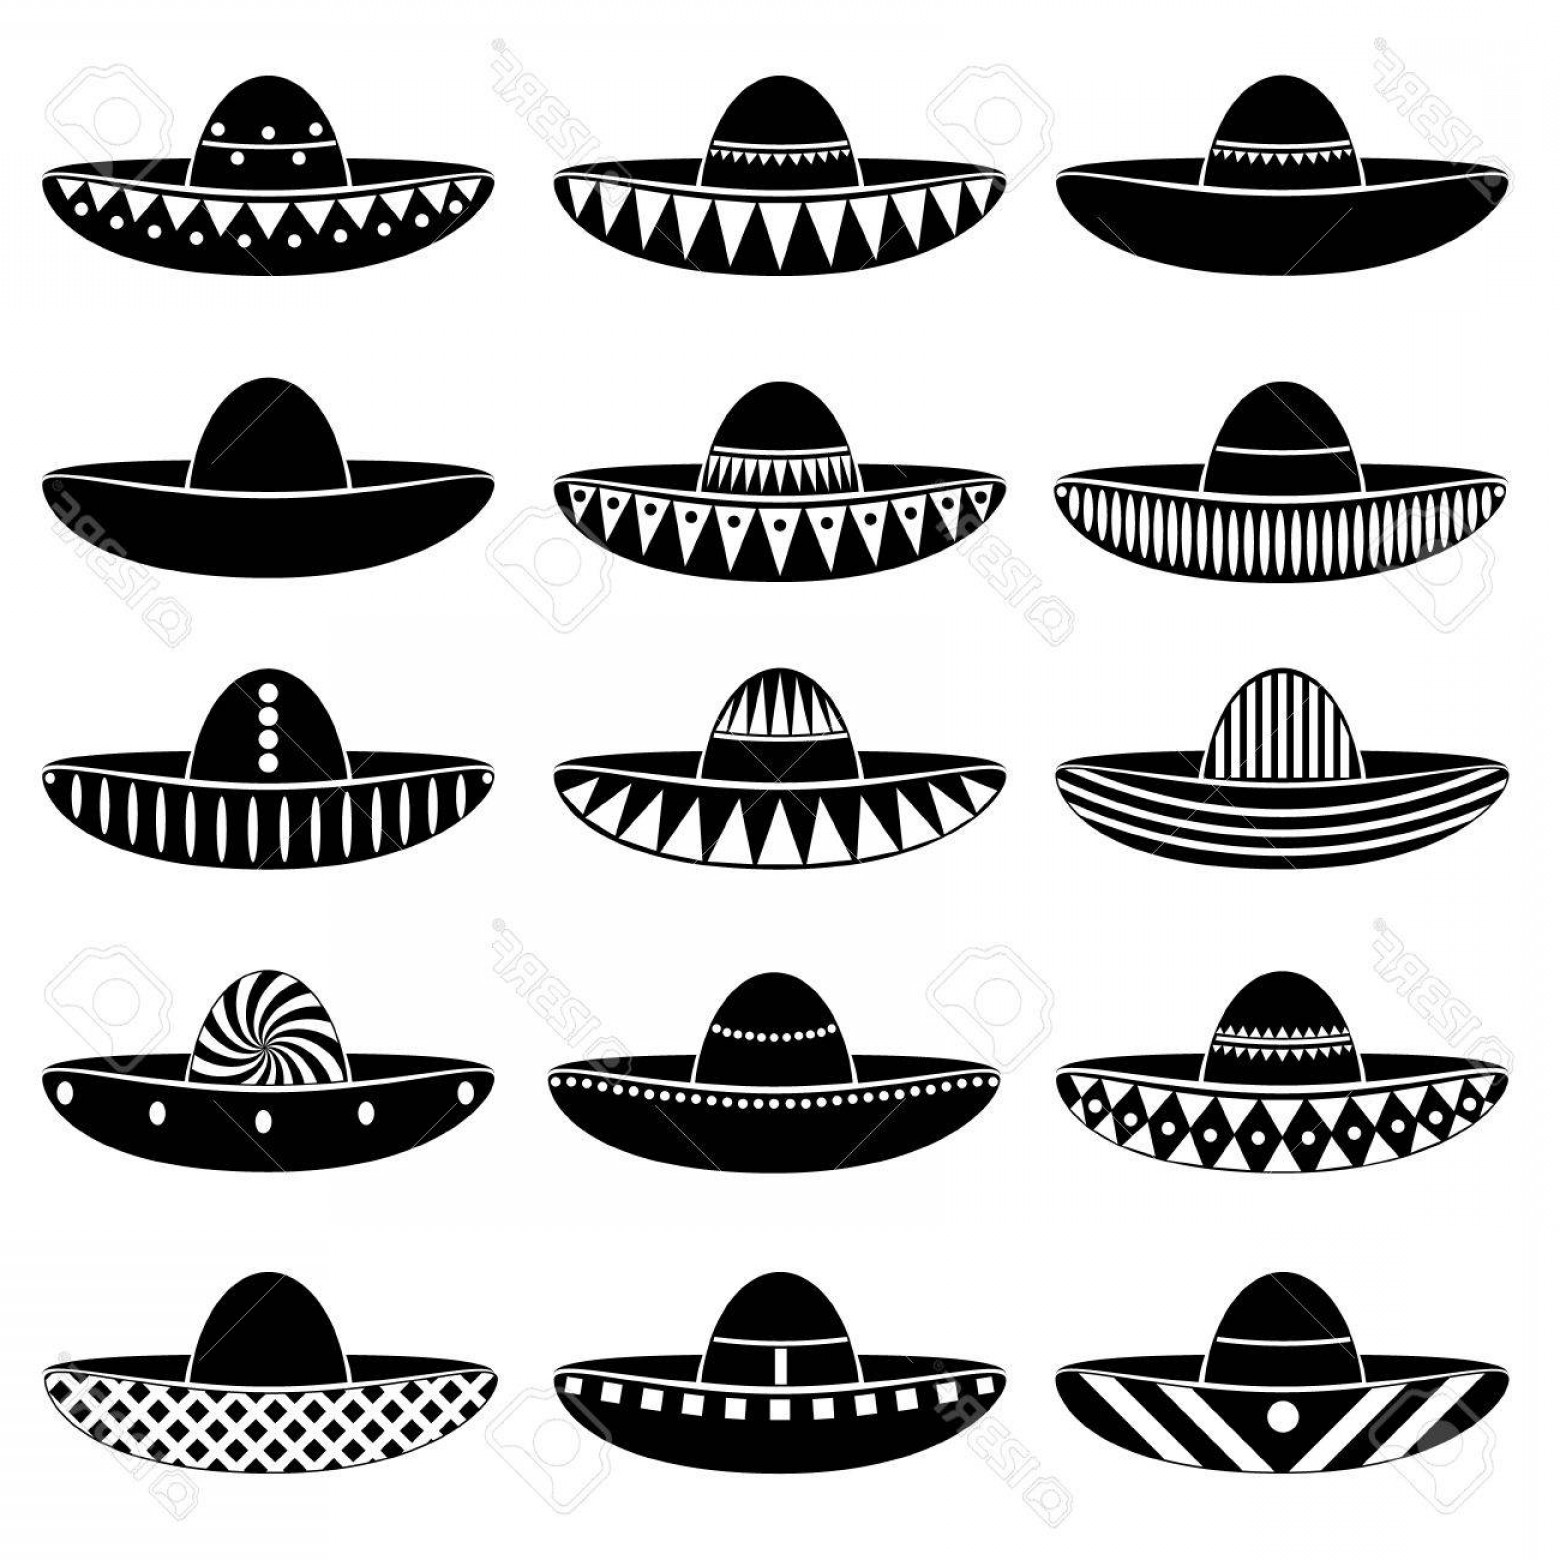 Sombrero Hat Vector: Photostock Vector Mexico Sombrero Hat Variations Icons Set